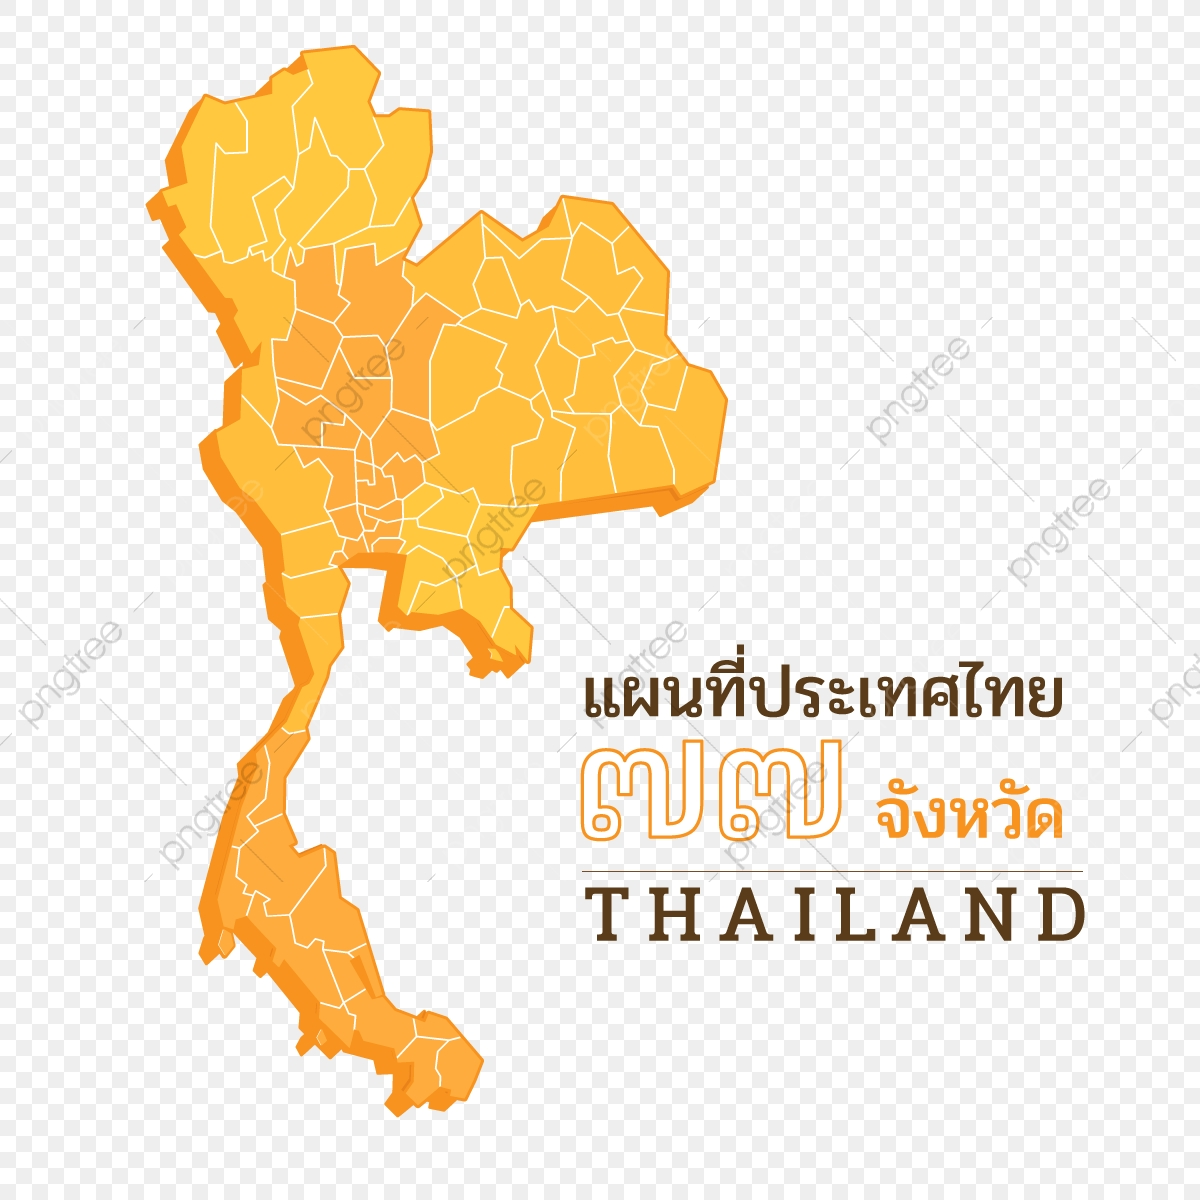 Thailand Map, Thailand, Map, Illustration PNG and Vector ...